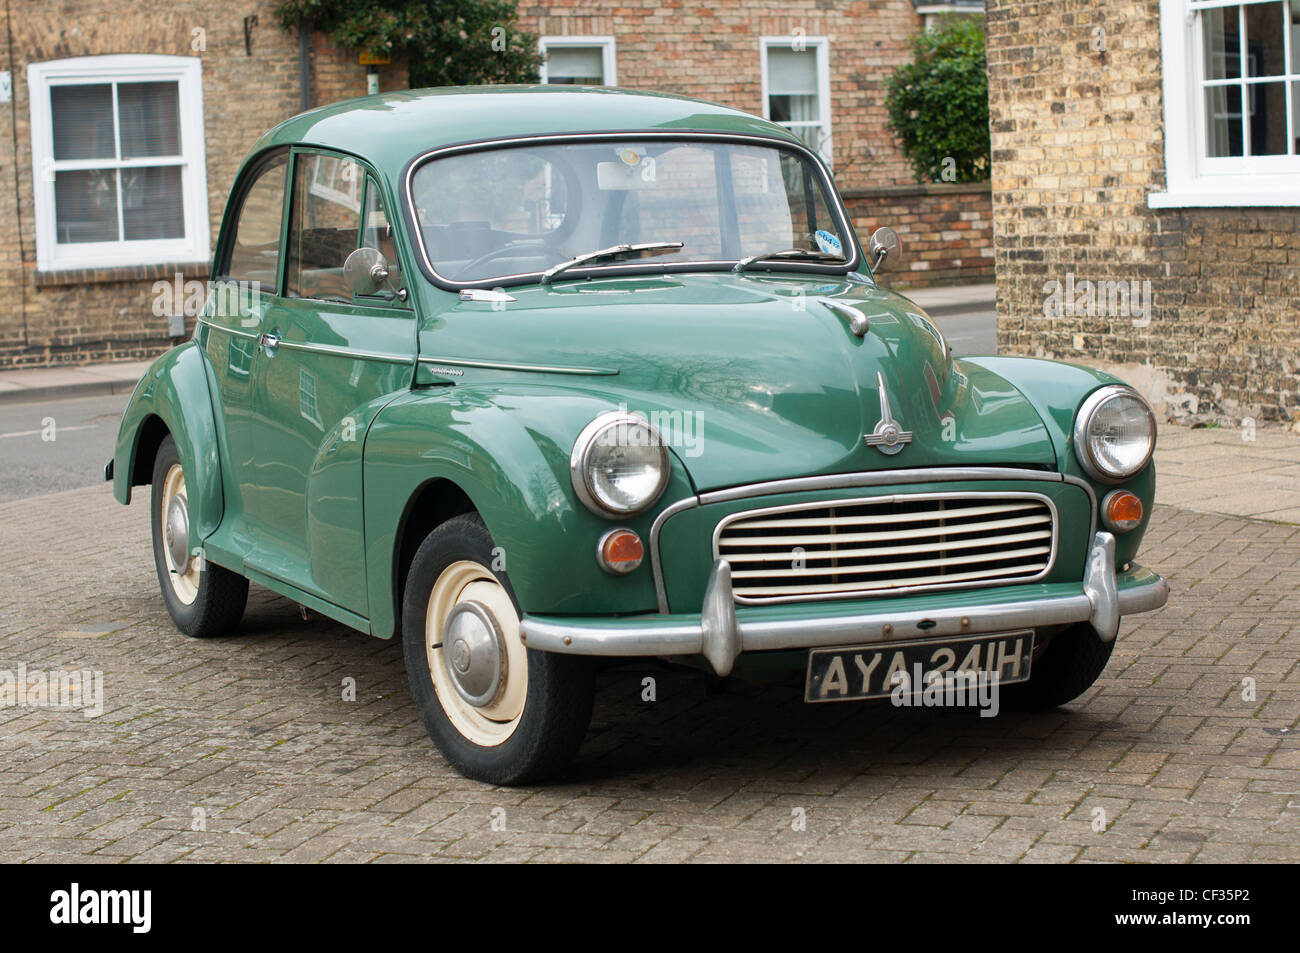 Morris Minor car seen parked in Ely, Cambridgeshire, England. - Stock Image